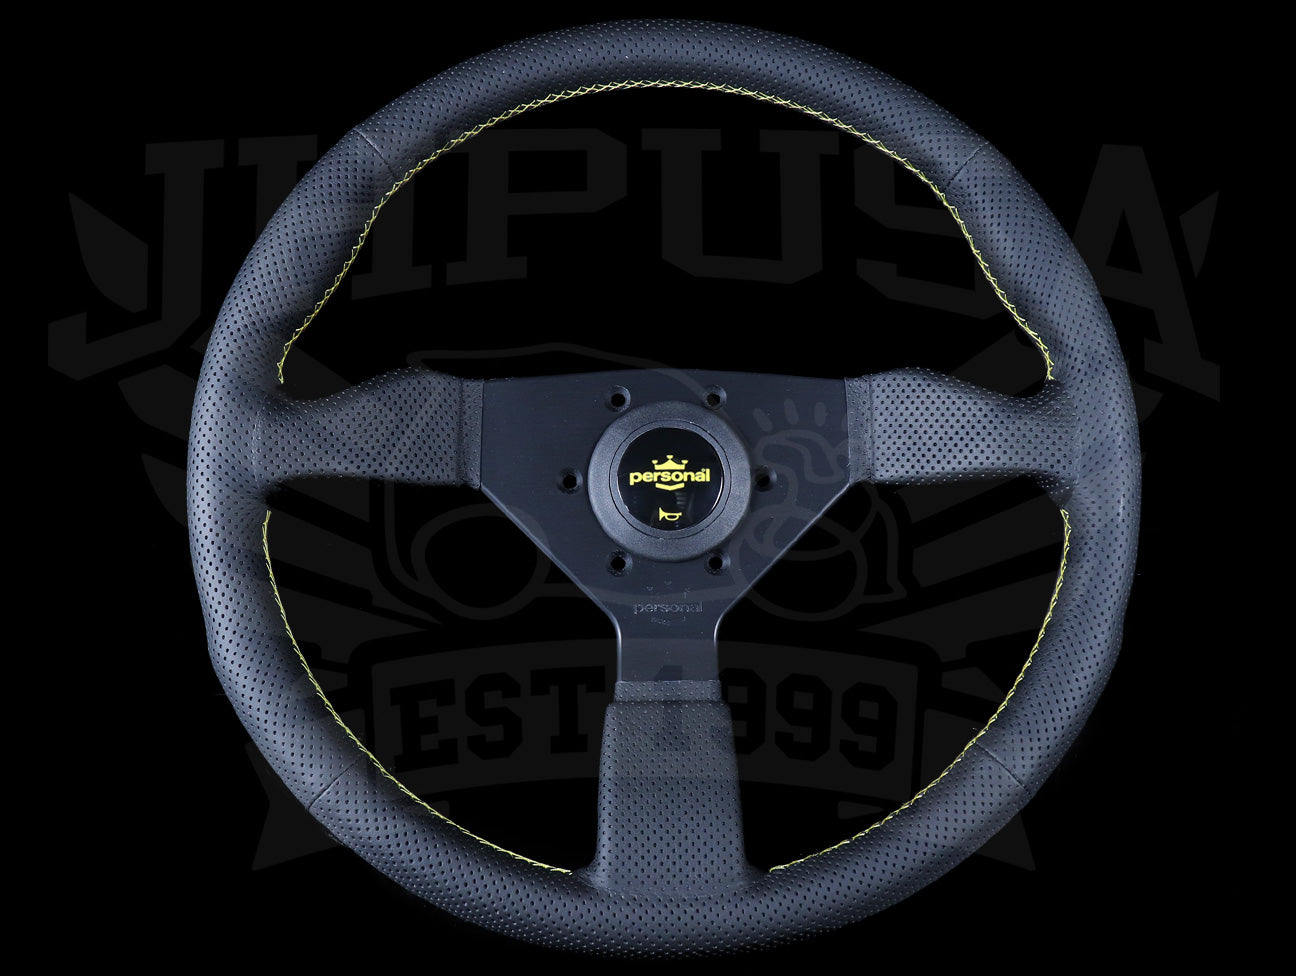 Personal Neo Grinta 350mm Steering Wheel - Black Perforated Leather / Yellow Stitch